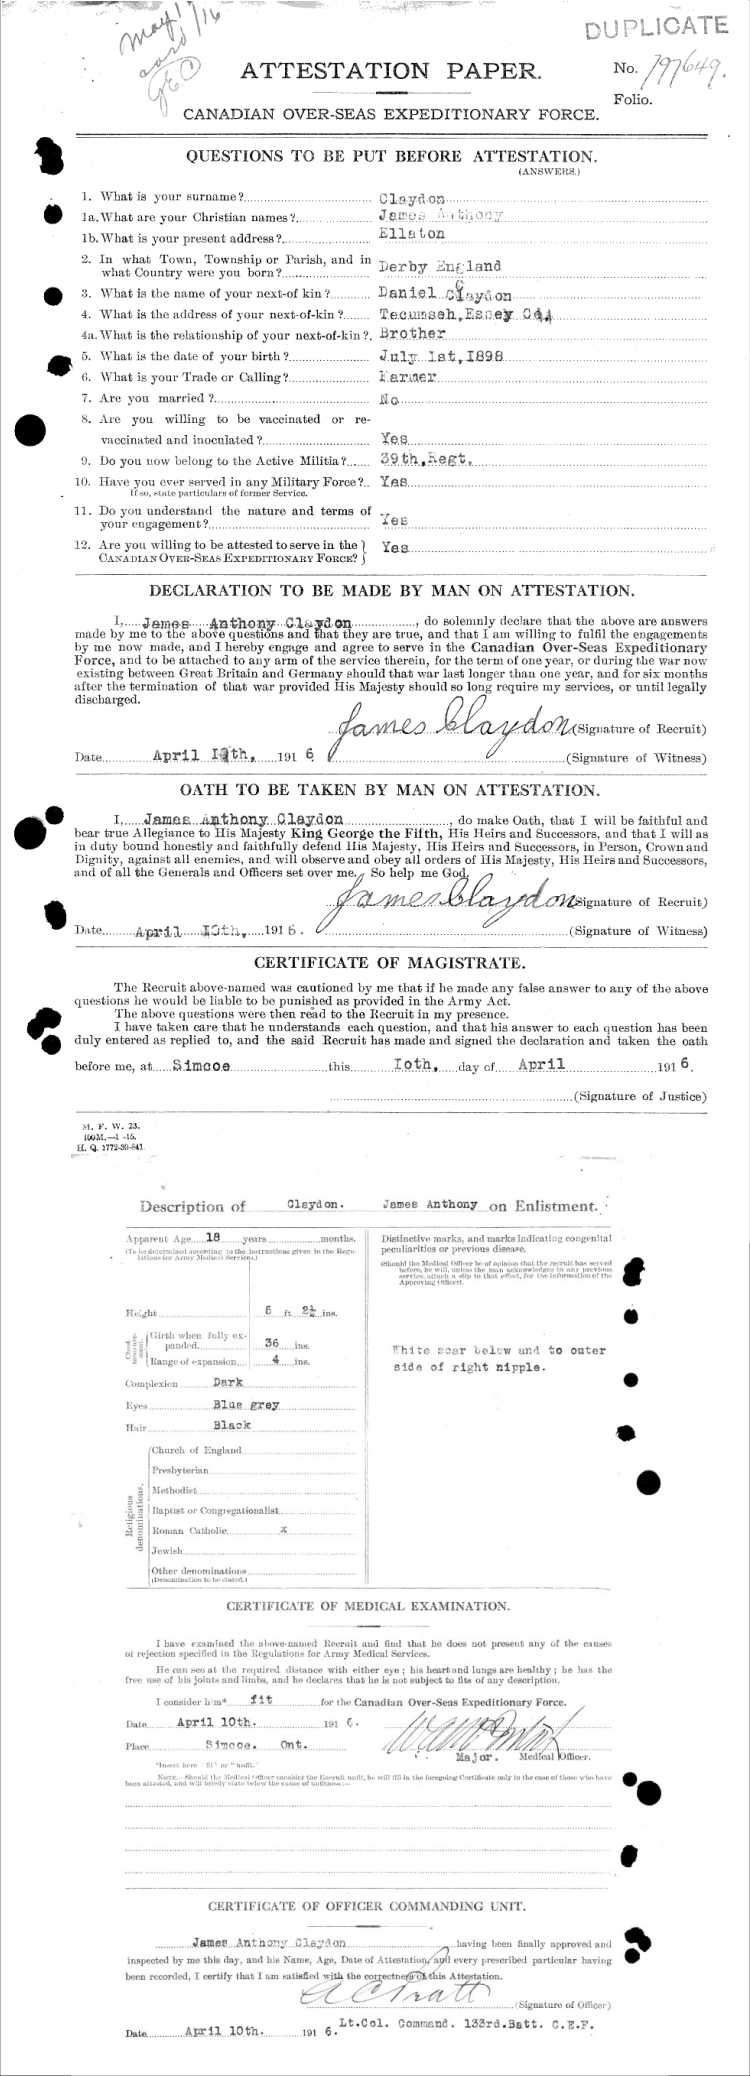 WWI Attestation Paper - 133rd Battalion – Norfolk's Own